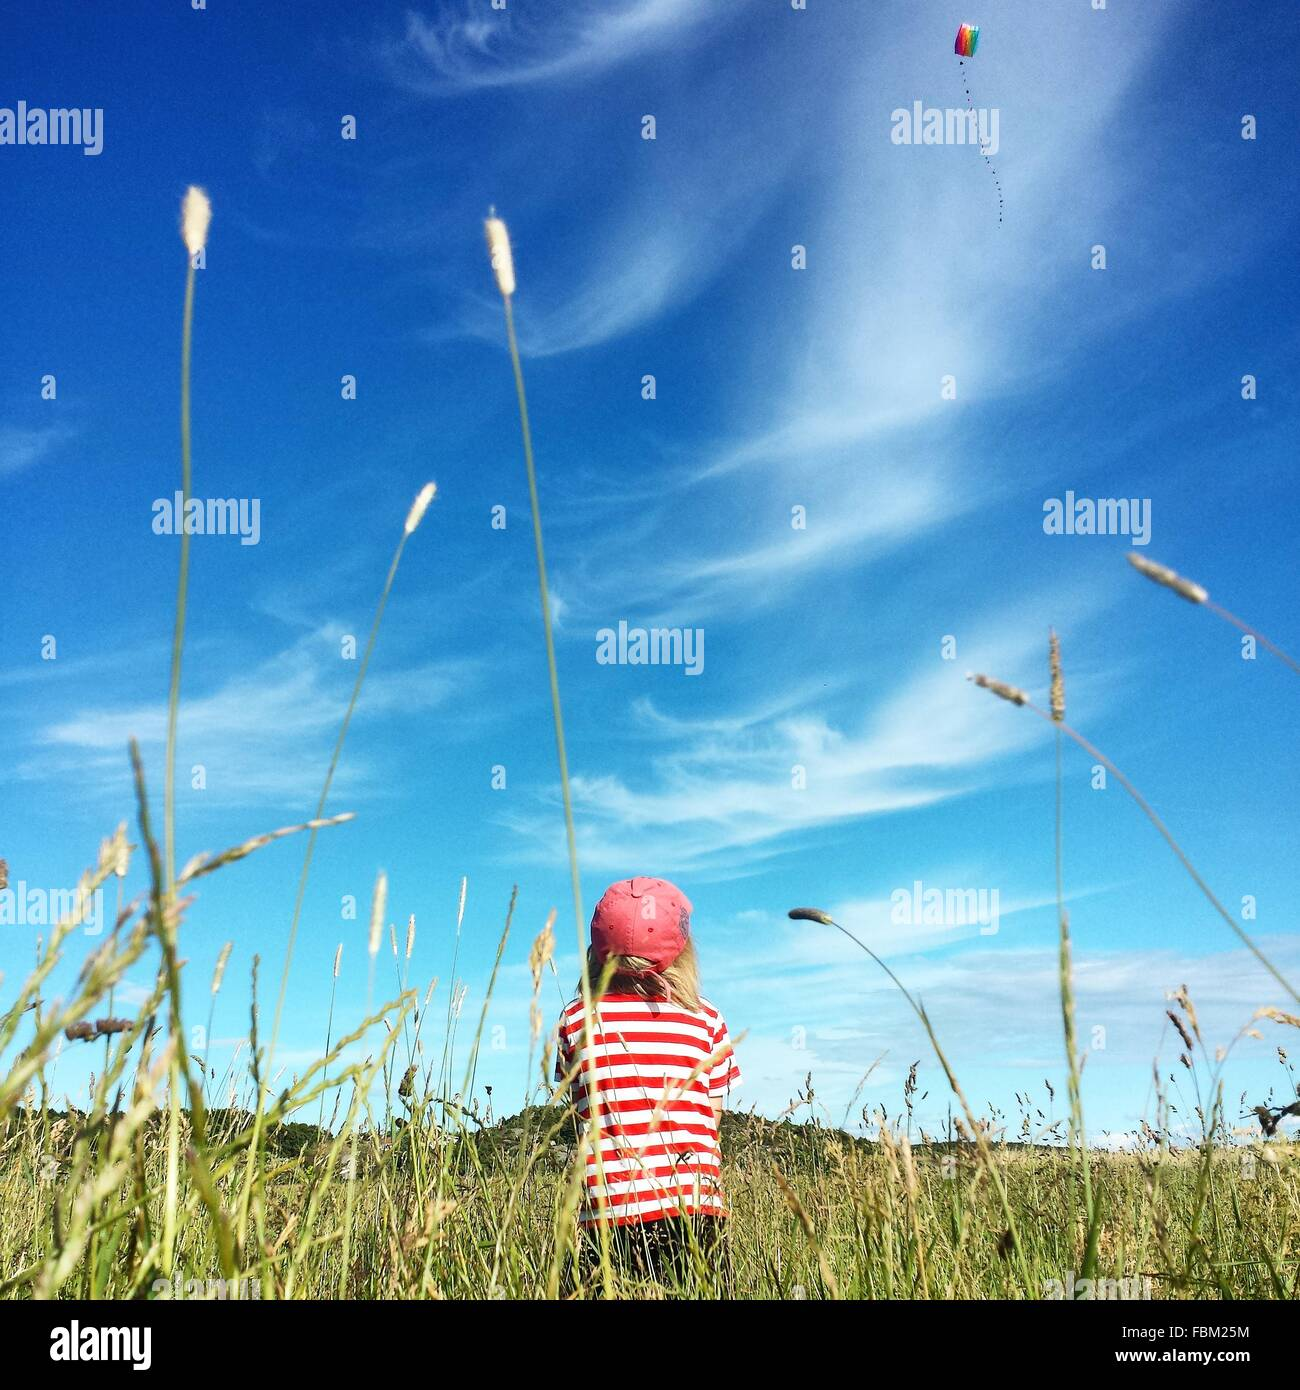 Rear View Of Boy Flying Kite In Grassy Field - Stock Image